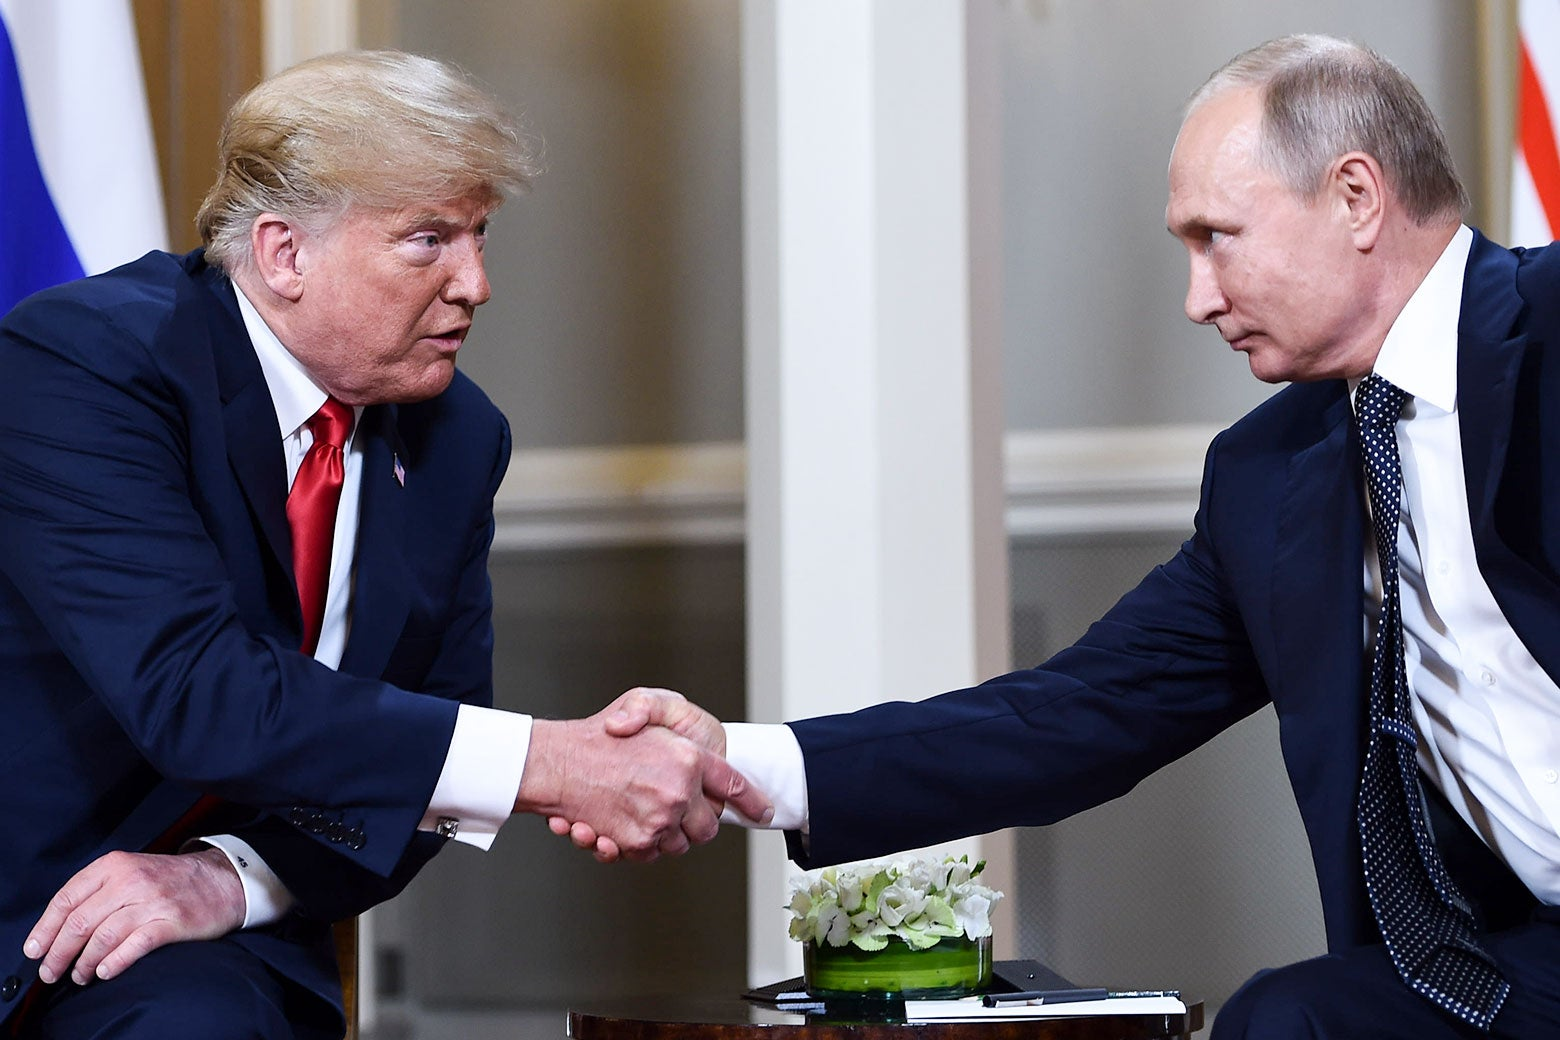 President Donald Trump and Russian President Vladimir Putin shake hands in Helsinki on July 16.